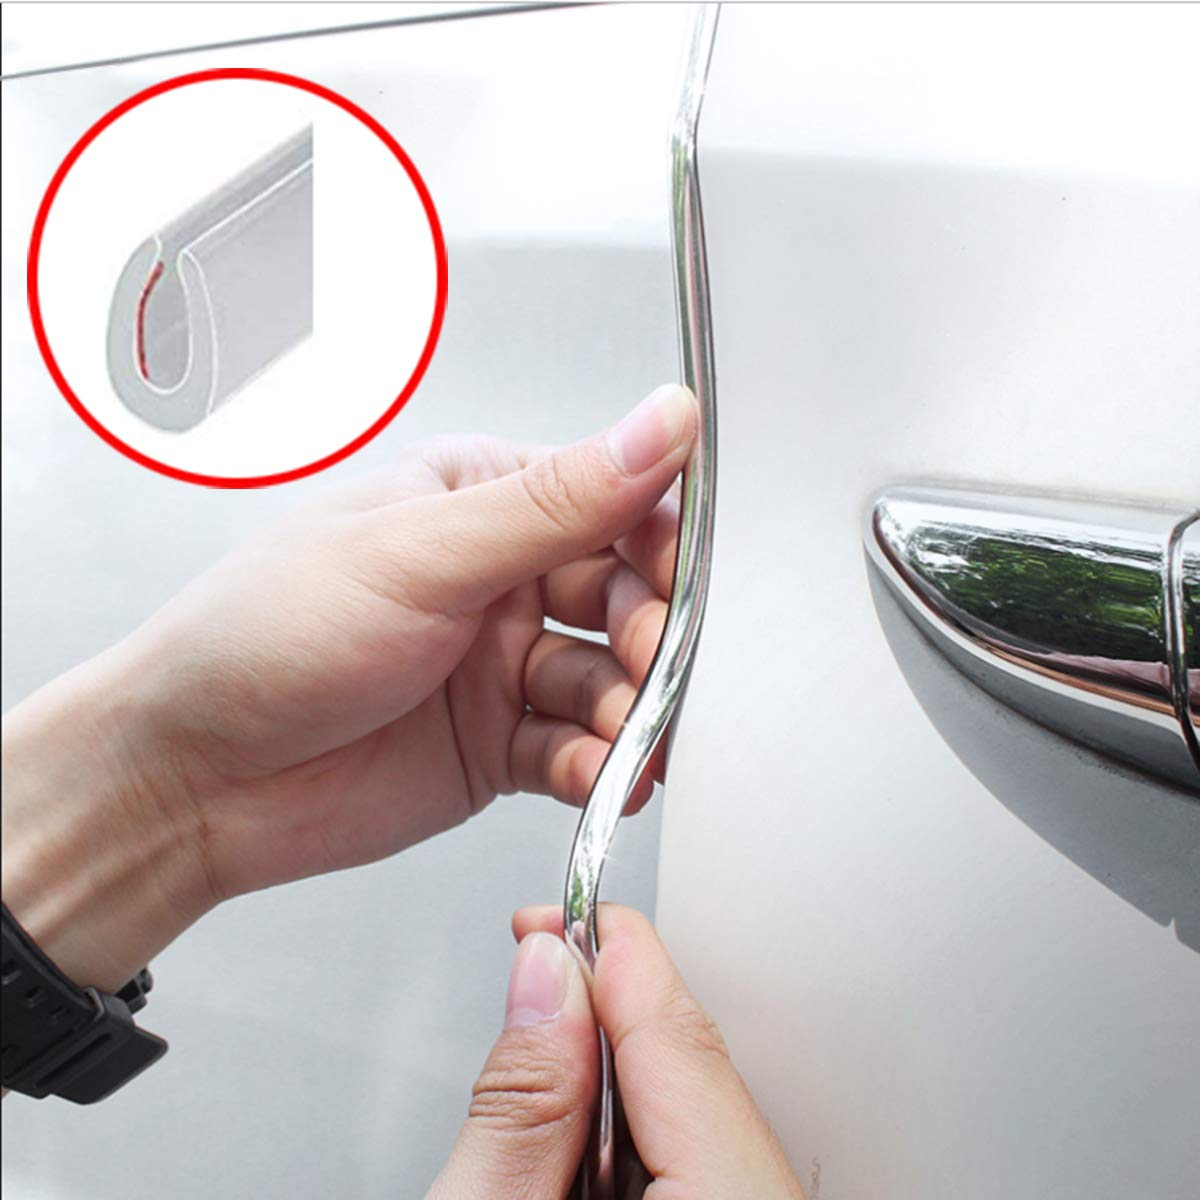 Door Edge Guard, Car door edge Protected Lining , U-edge trimming rubber seal protector car protection door side Molding Seal Protector,Suitable for most cars, no glue required((16Ft ) red) no glue required((16Ft ) red) HengJia